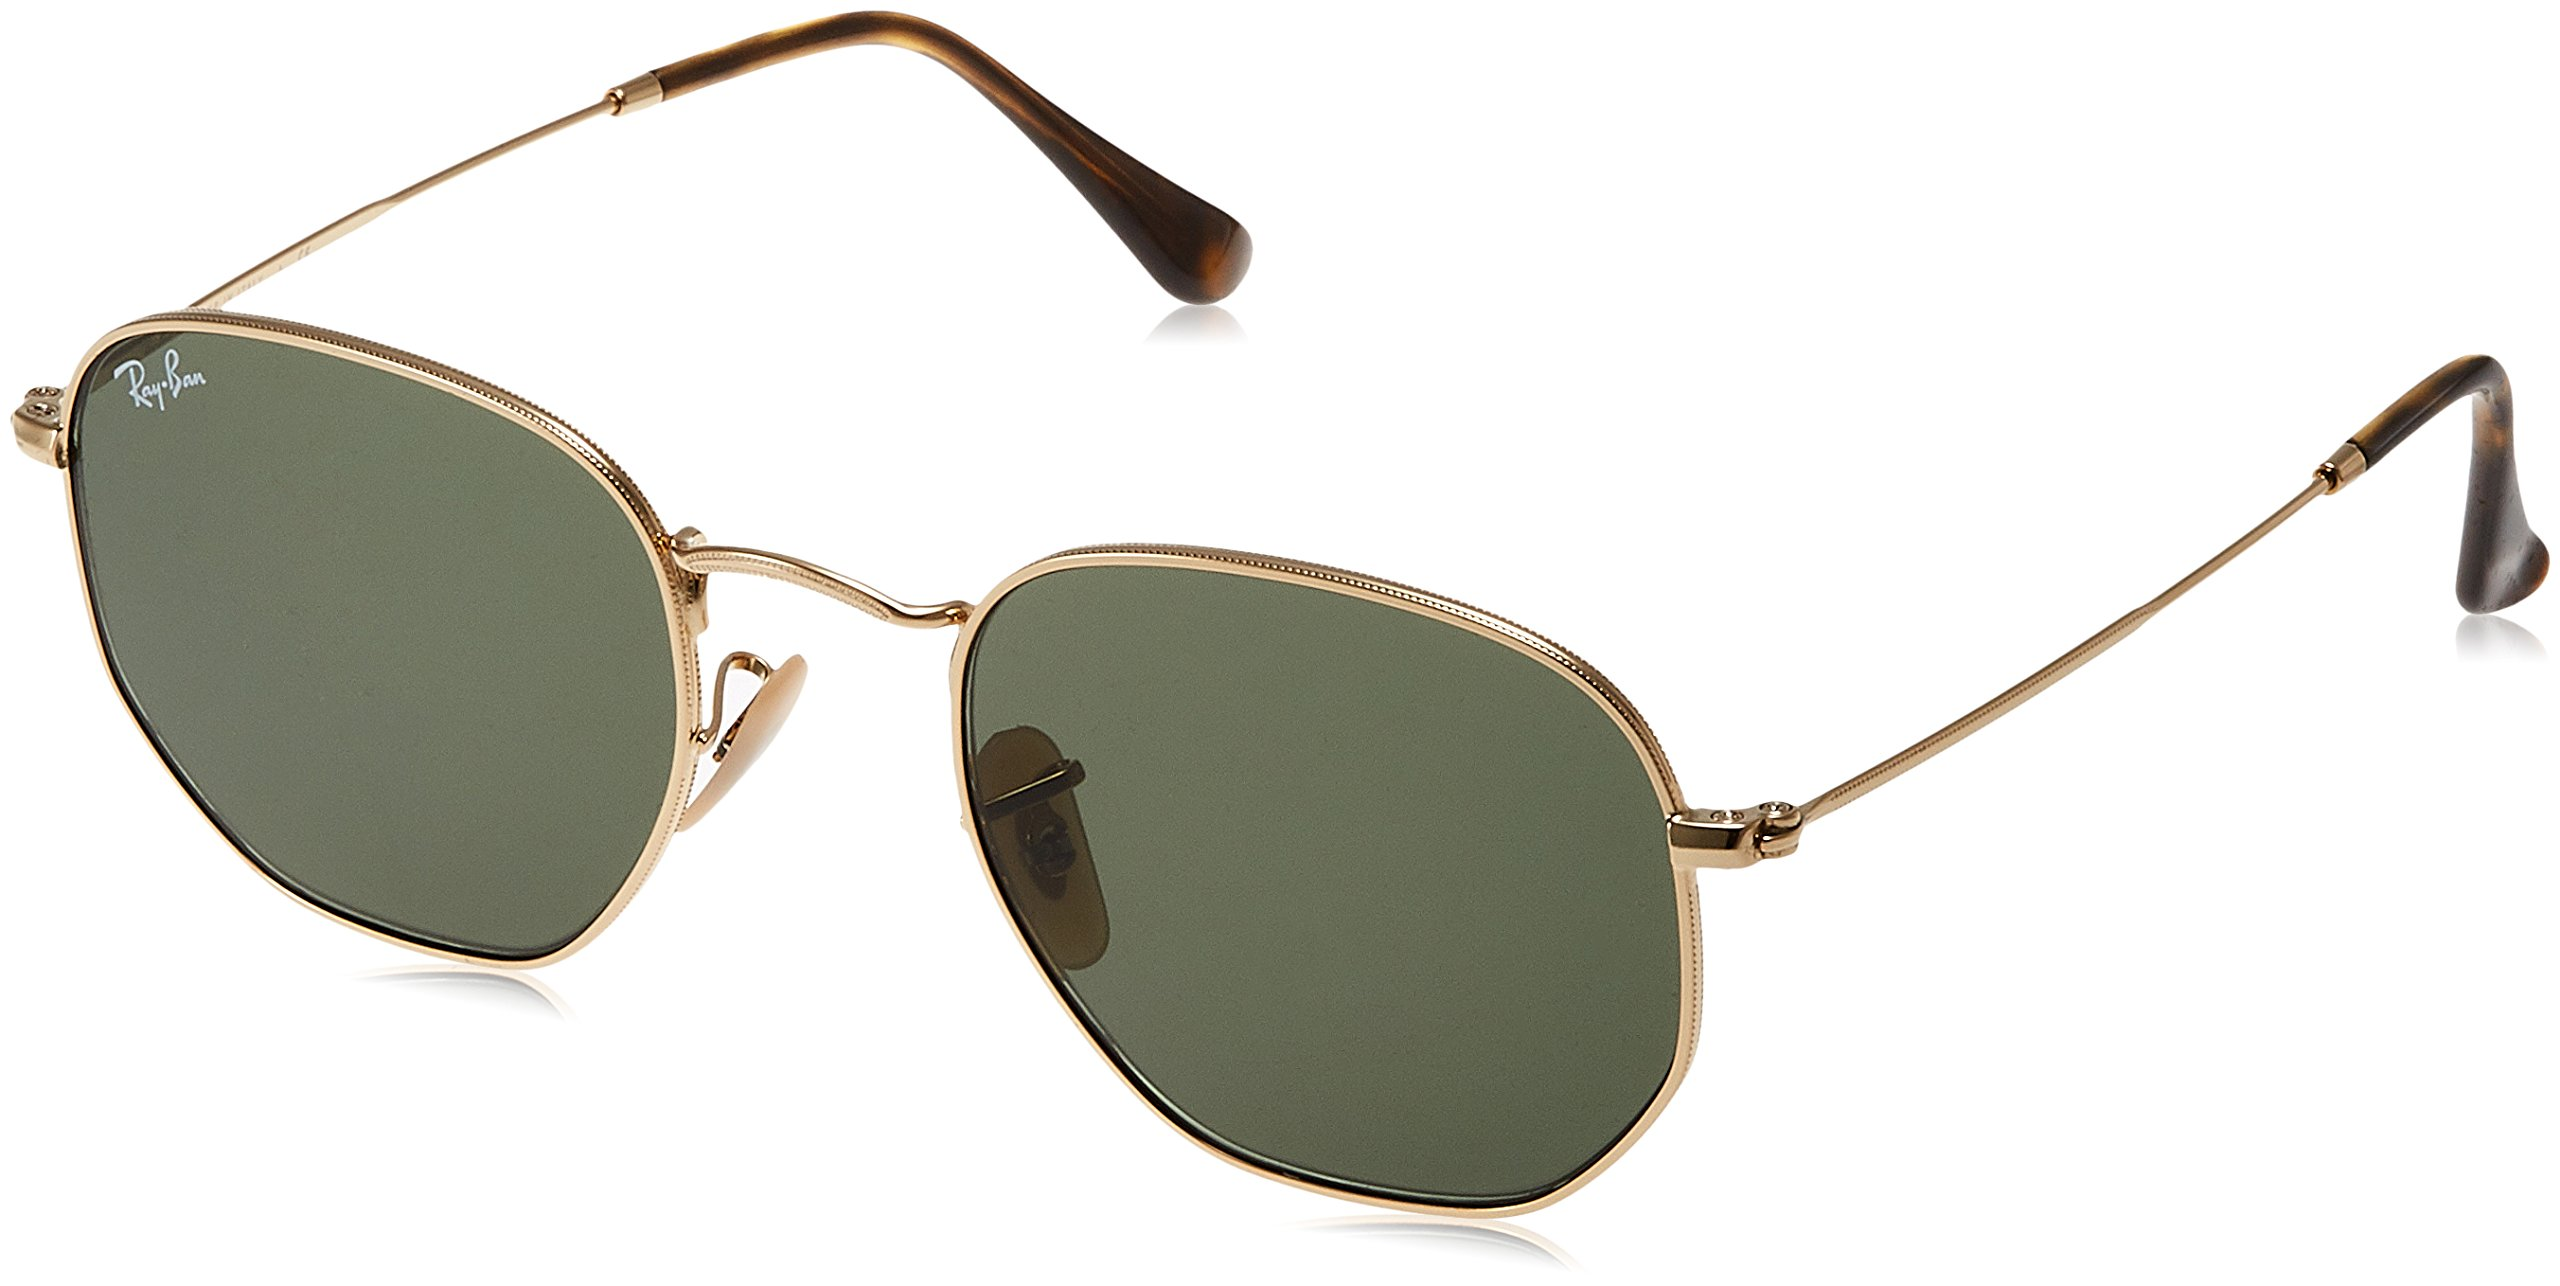 Ray-Ban Unisex RB3548N Hexagonal Sunglasses - Gold Frame Green Lenses, 51 mm